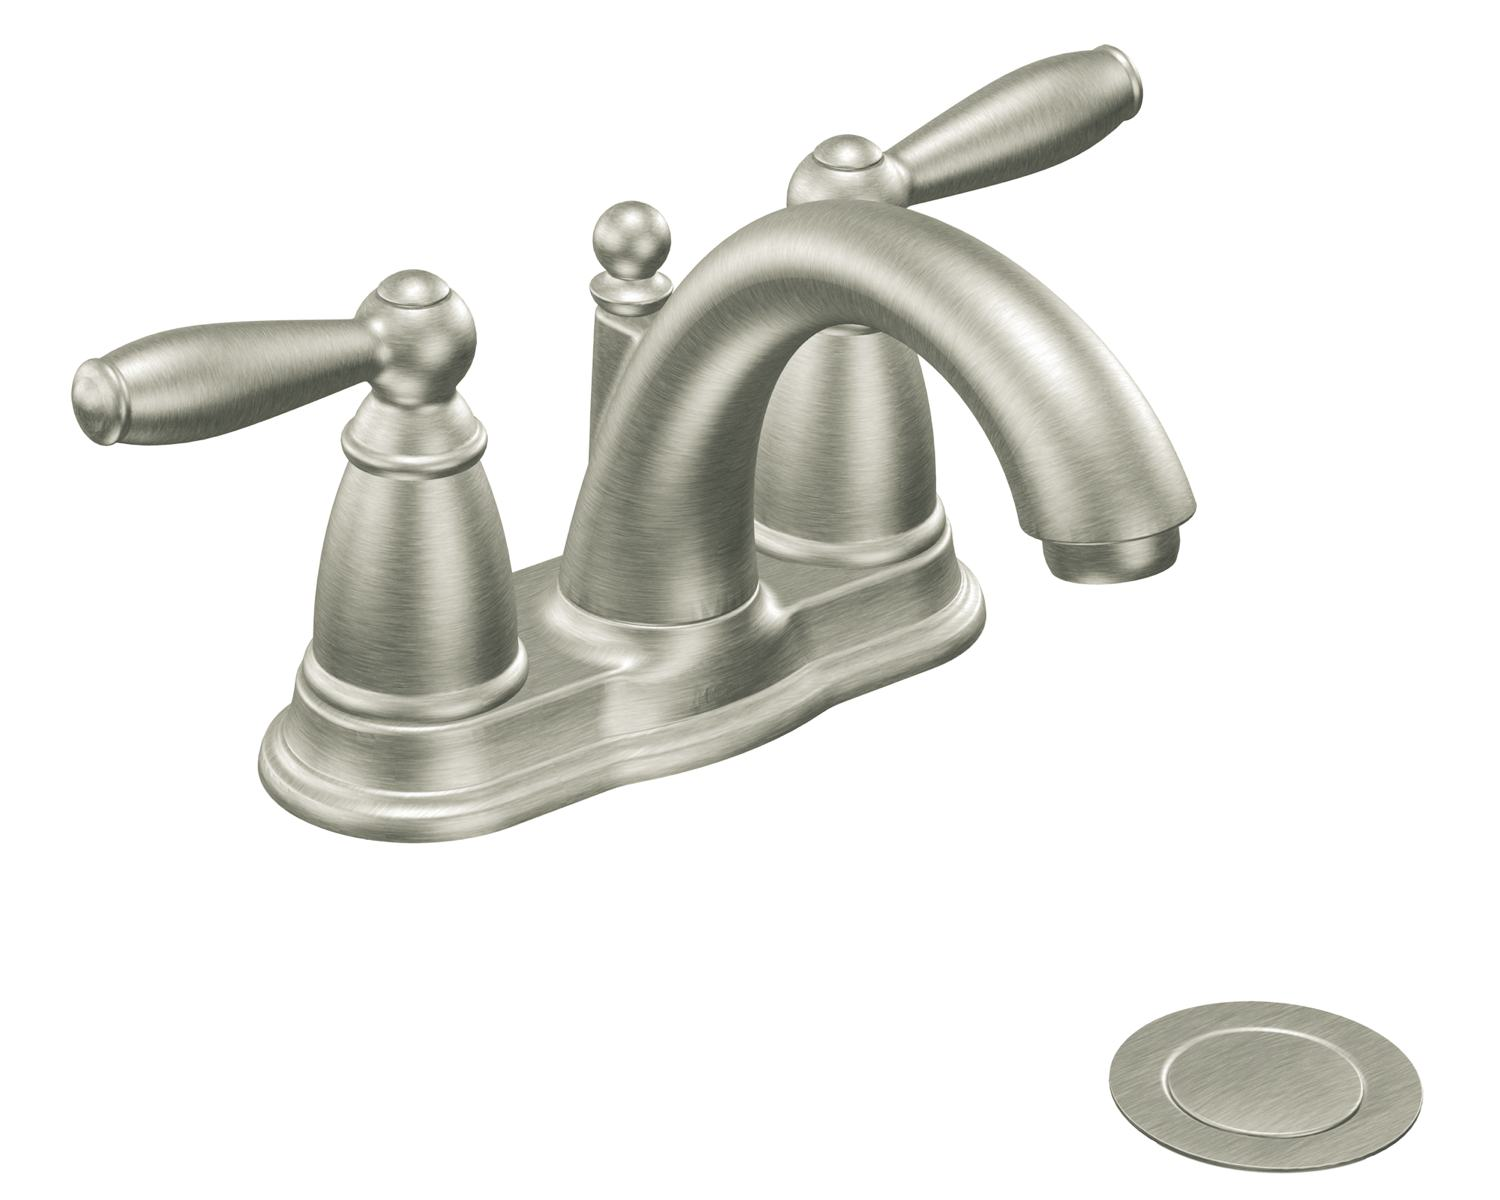 Moen 6610bn brantford two handle low arc bathroom faucet for Bathroom taps